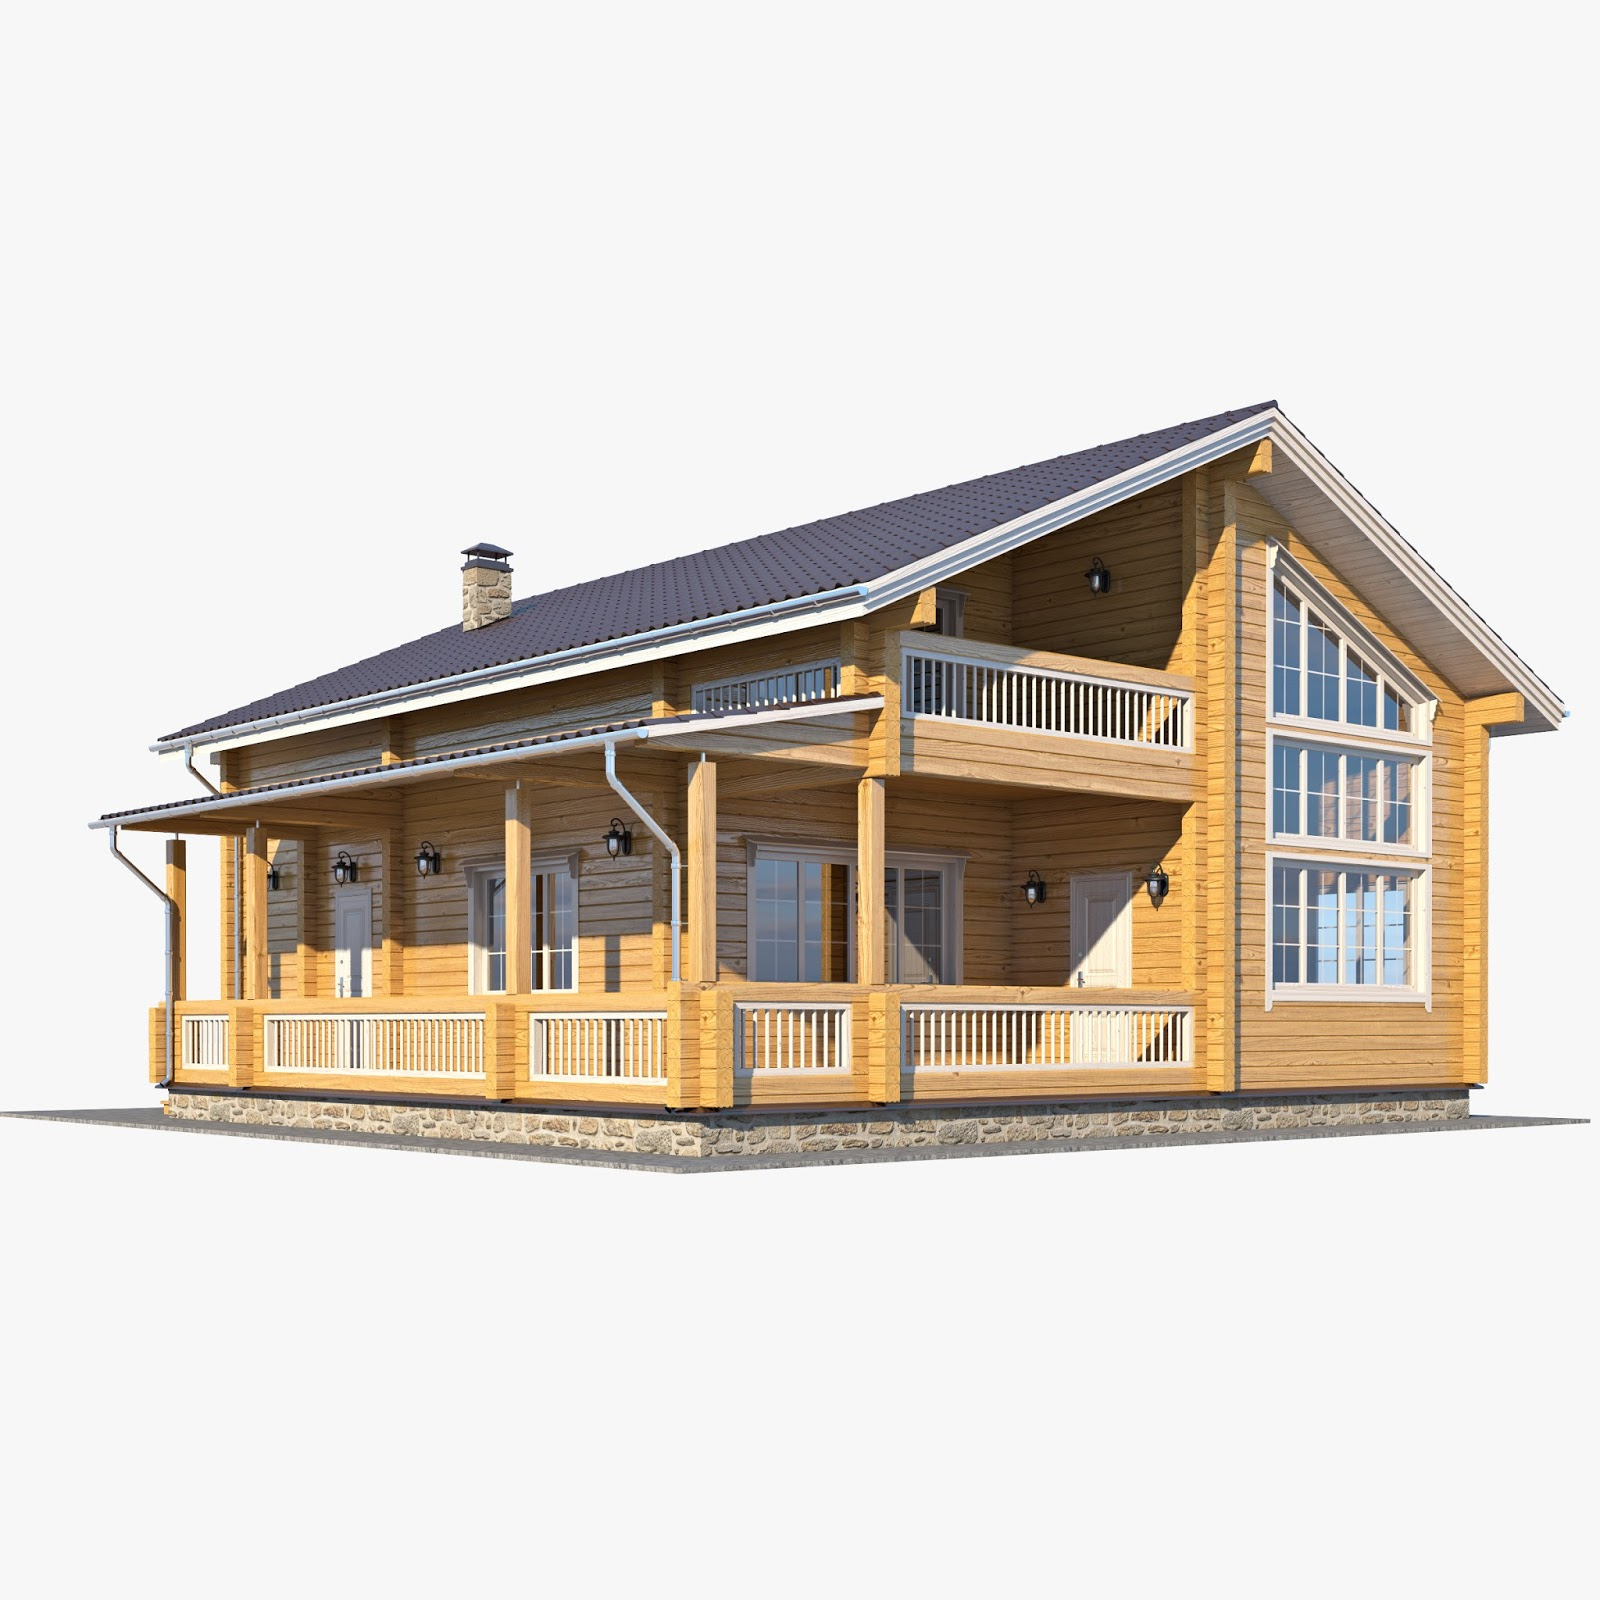 Usa and uk universities 3d printed house models printed Small home models pictures